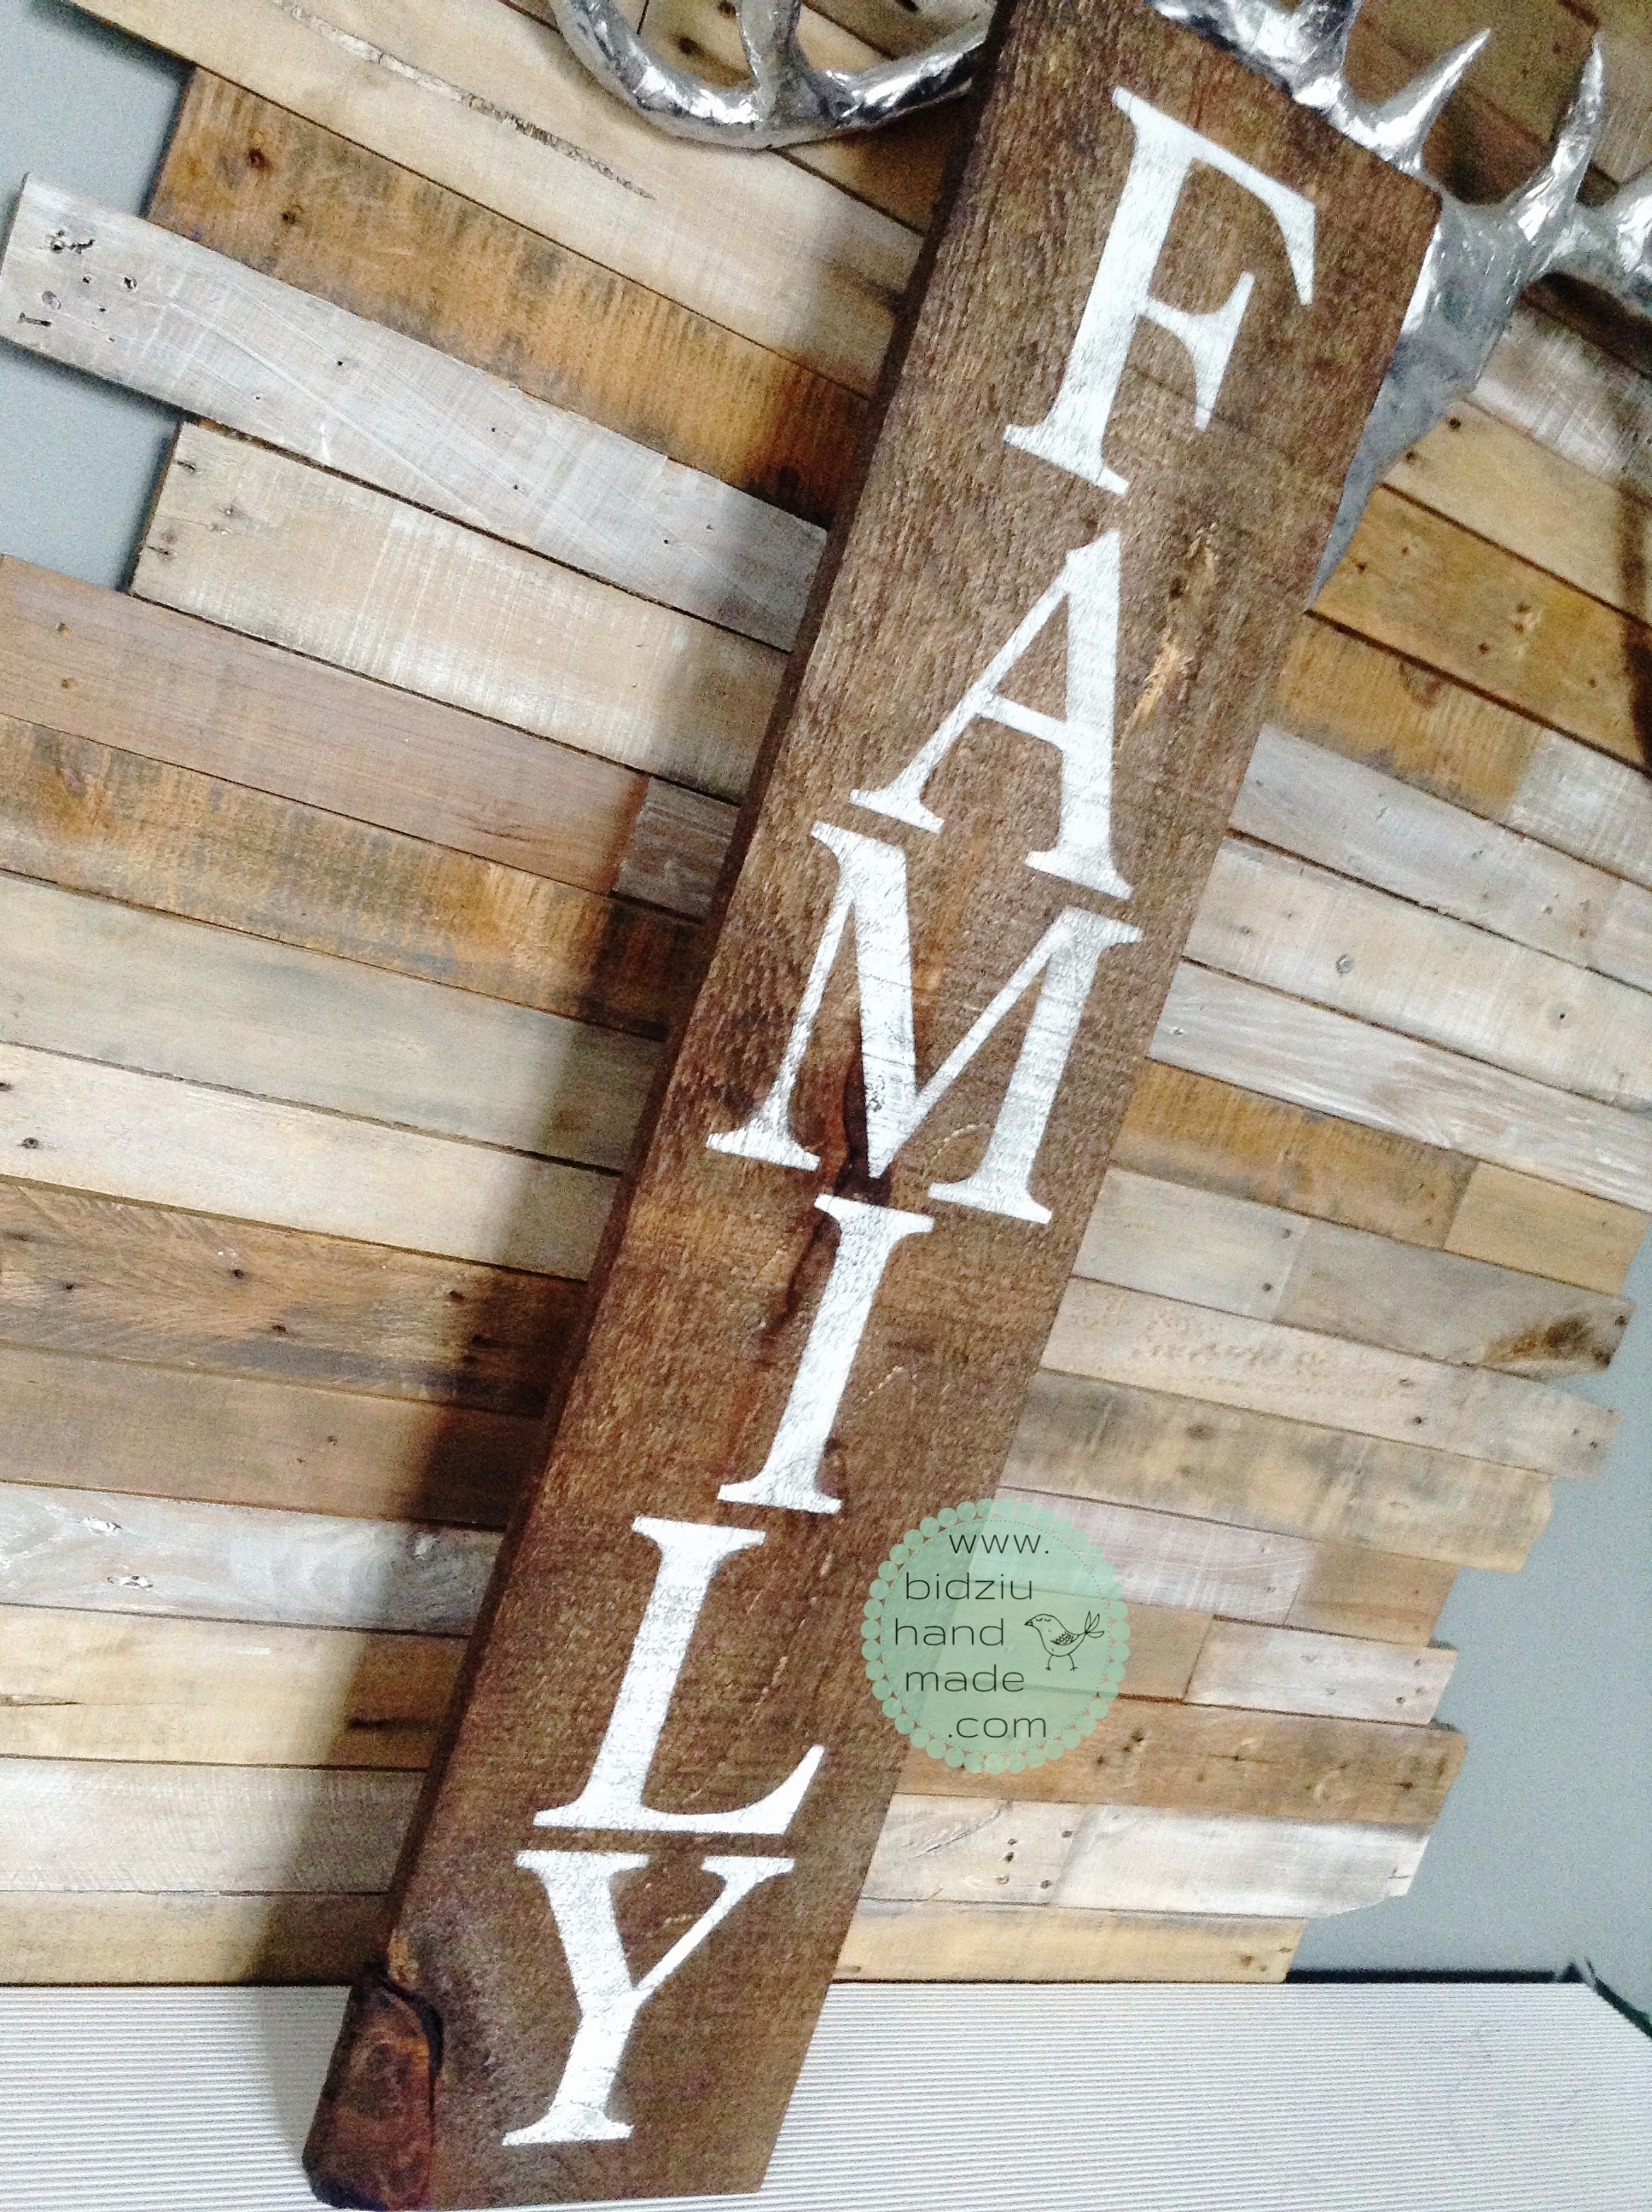 family rustic sign, handmade rustic sign, family wood sign, hand painted rustic sign, handmade family rustic wood sign, painted wood sign, custom made wood sign, rustic home decor, modern home decor, bidziu handmade, bidziu hand made